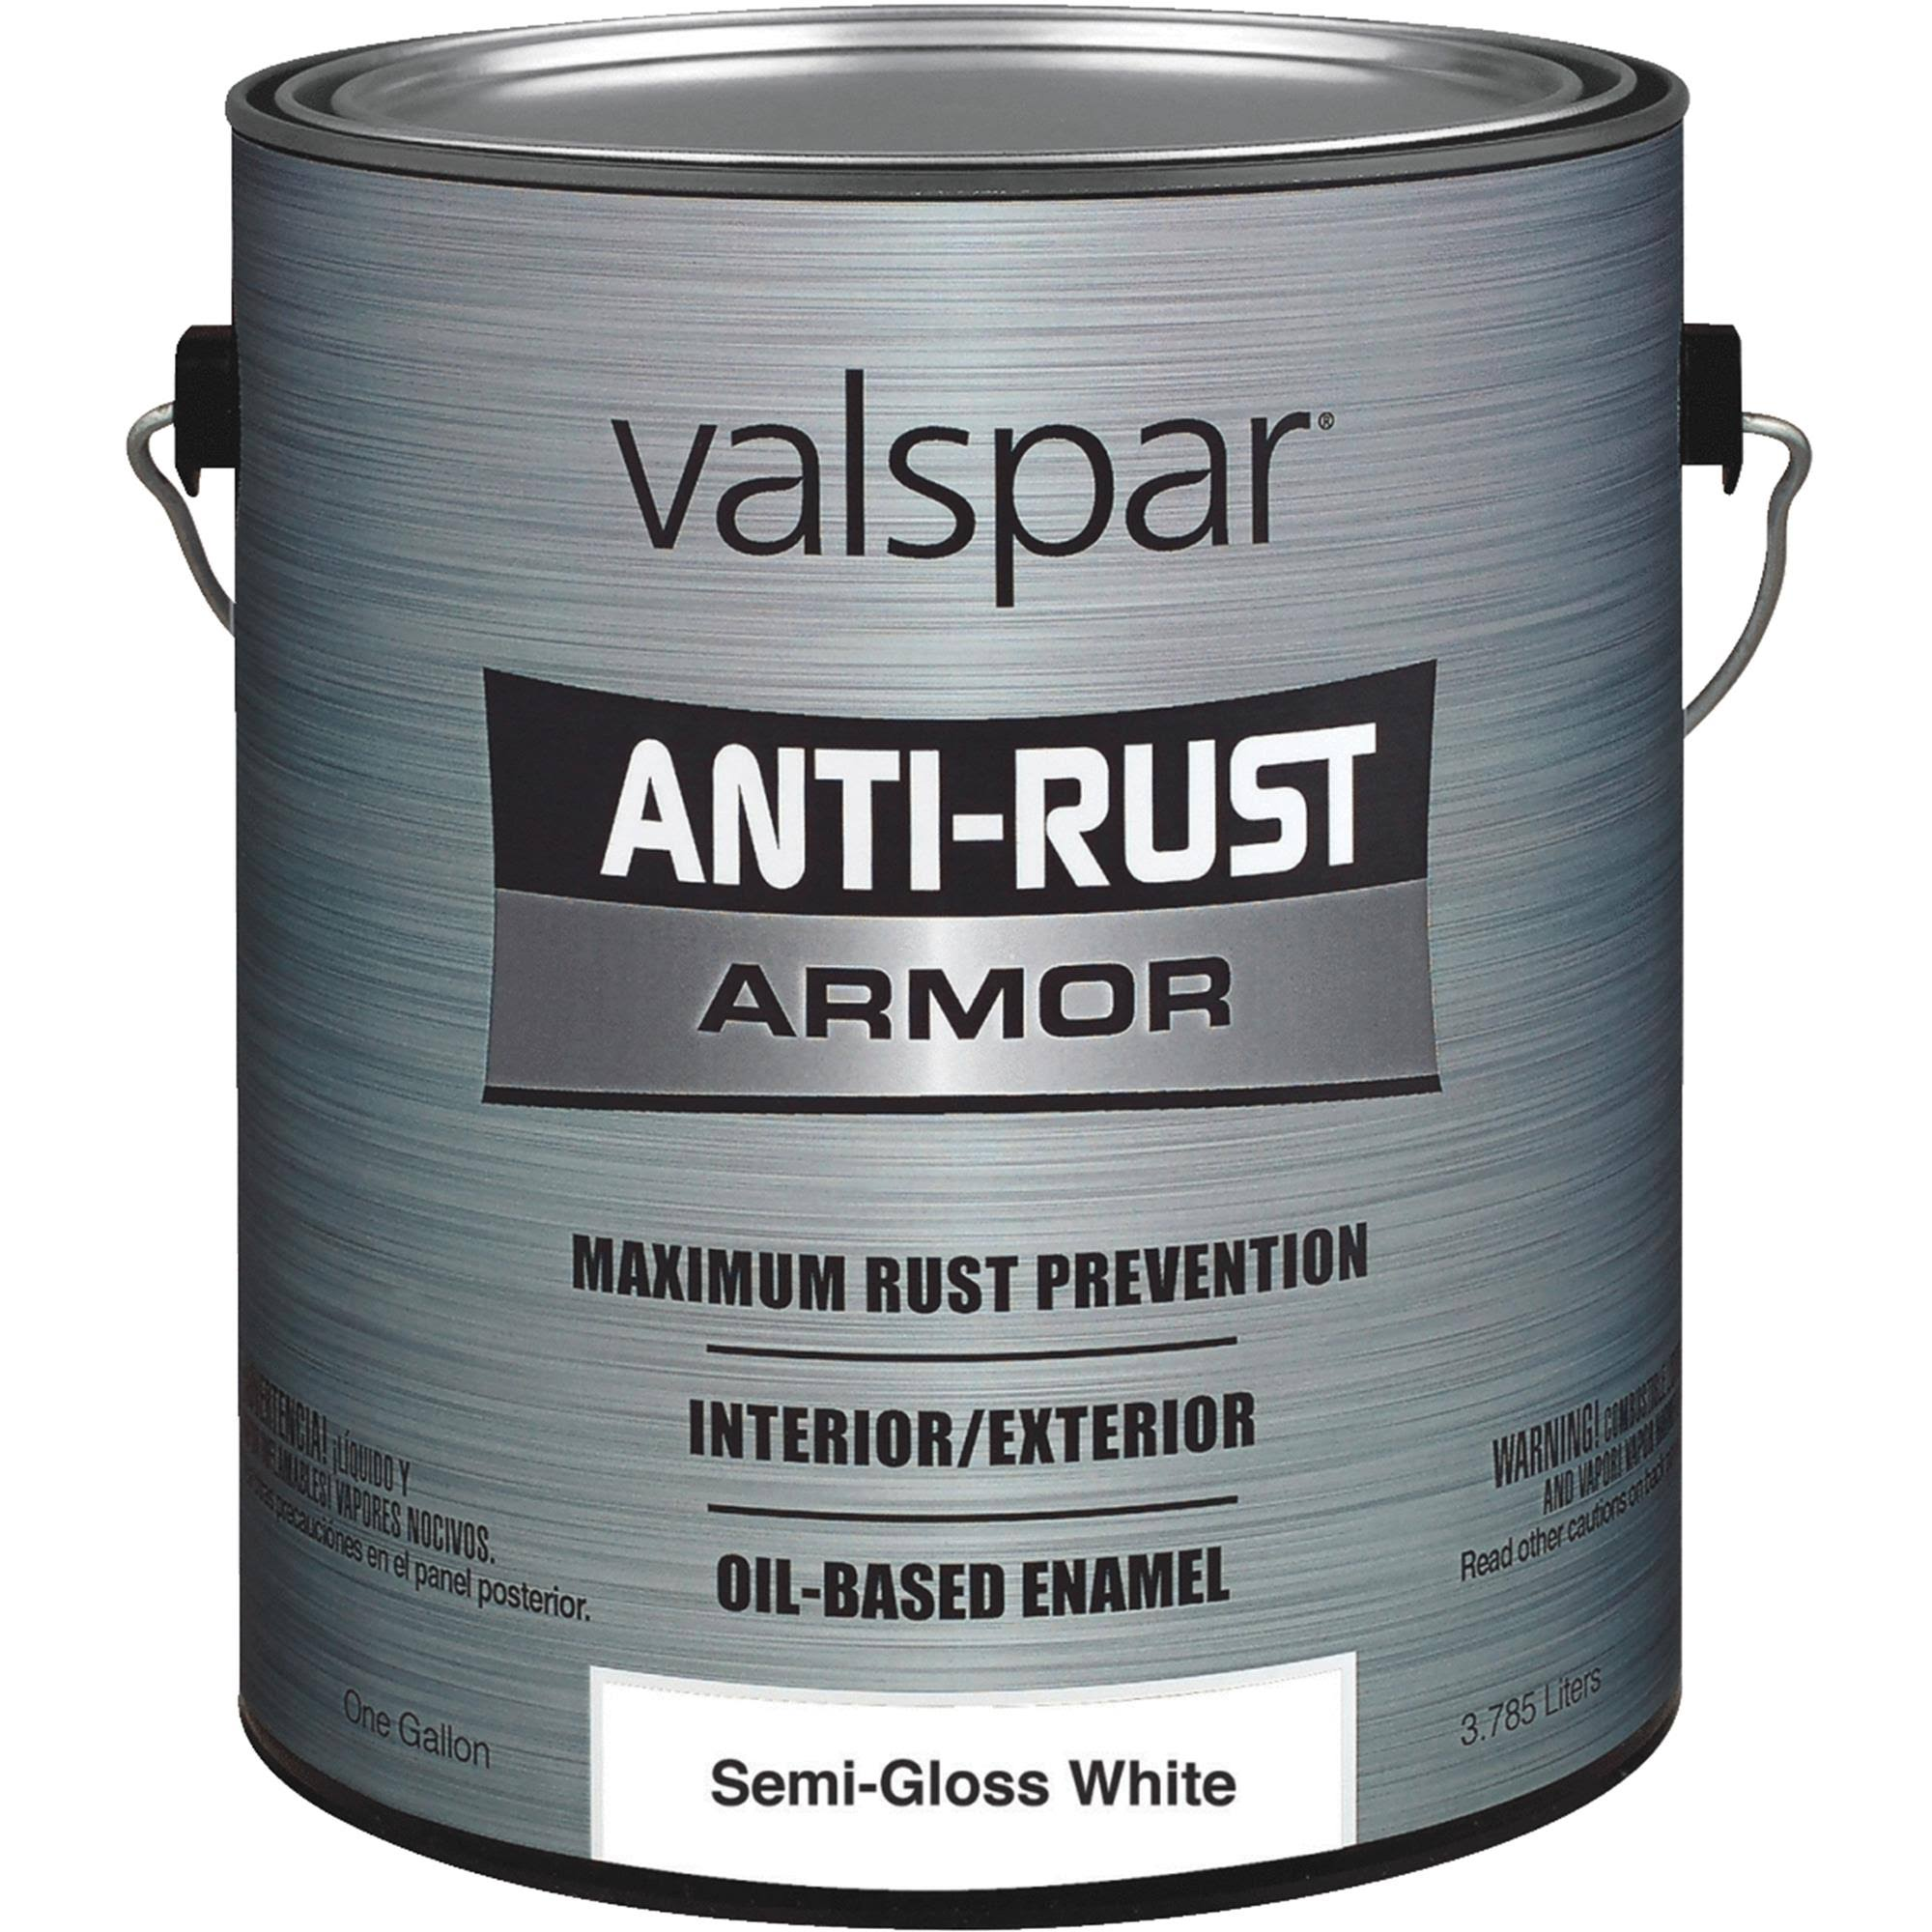 Valspar Anti Rust Oil-Base Enamel Paint - Semi-Gloss White, 1 Gallon